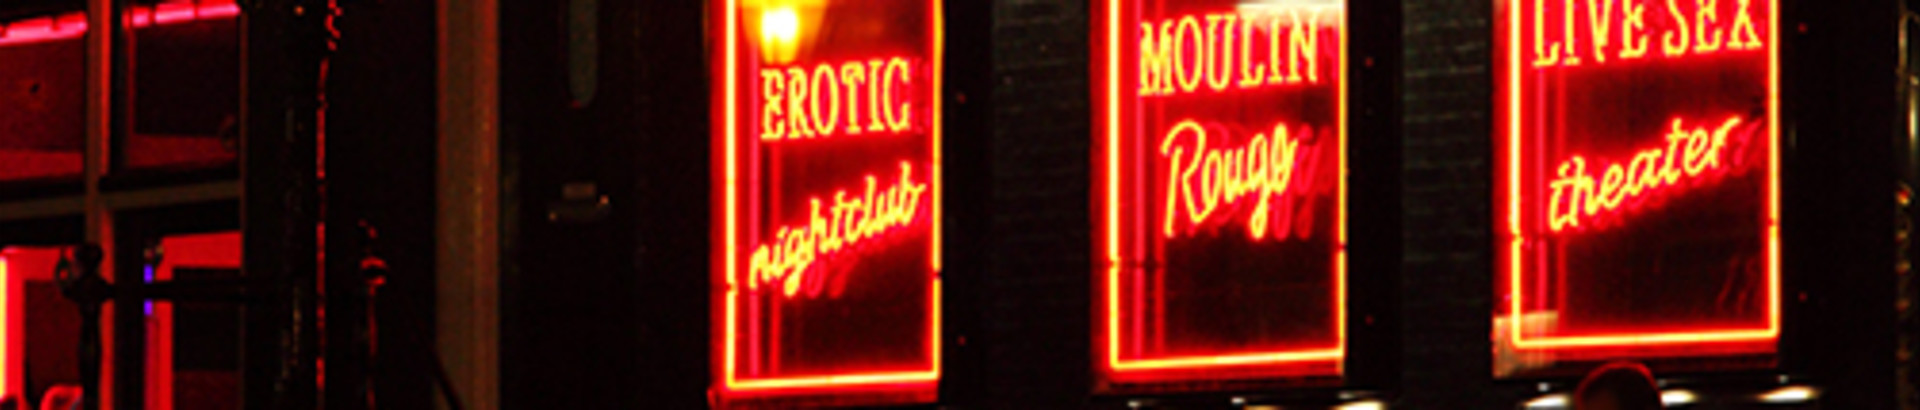 Amsterdam Red Light District_Moulin Rouge_Dest Thumb